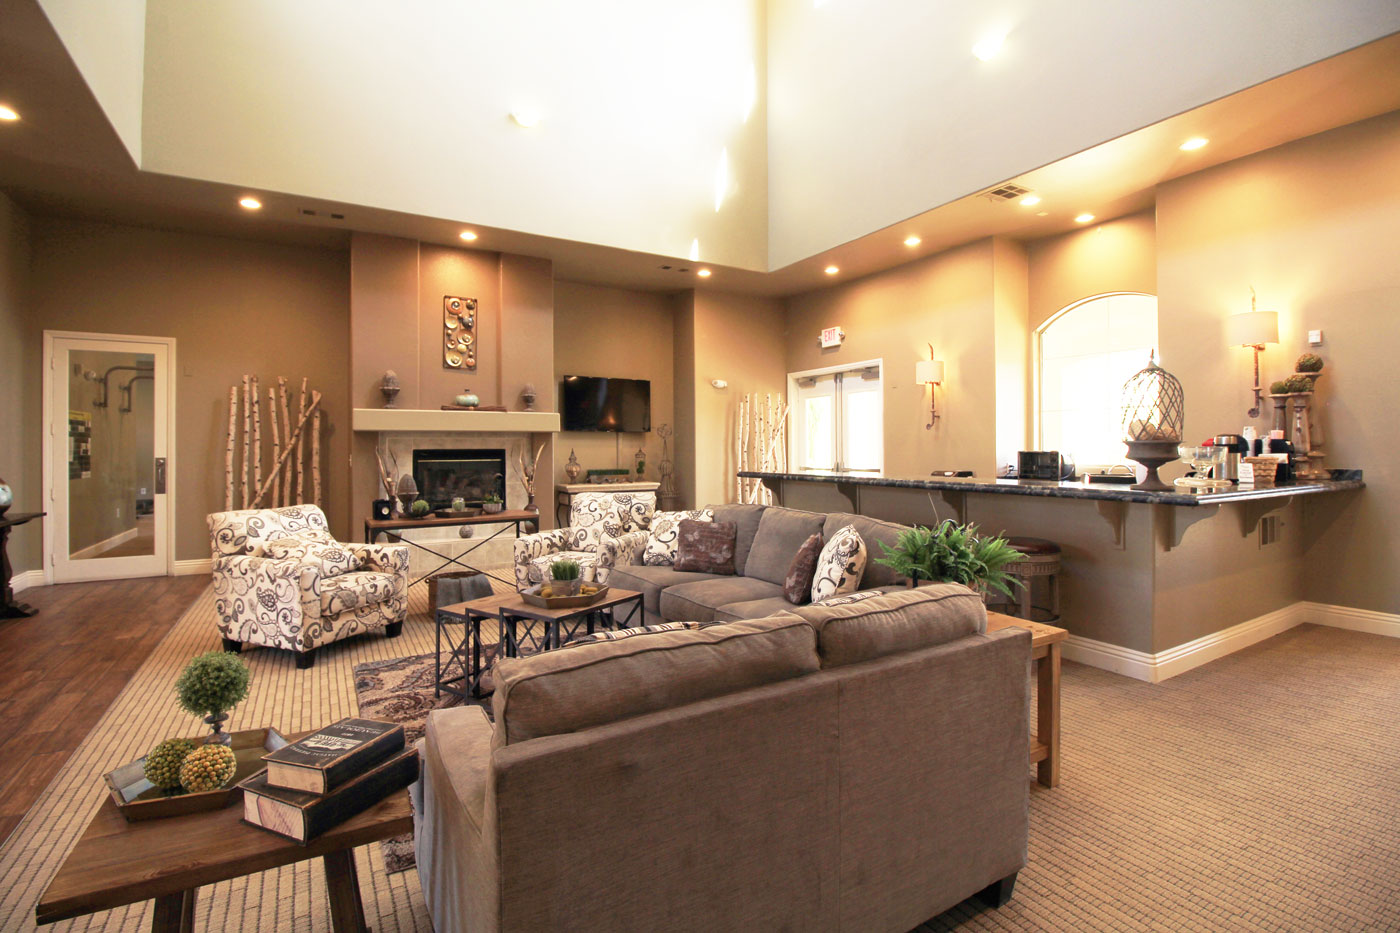 View of lounge with grey and white couches and rustic decor.